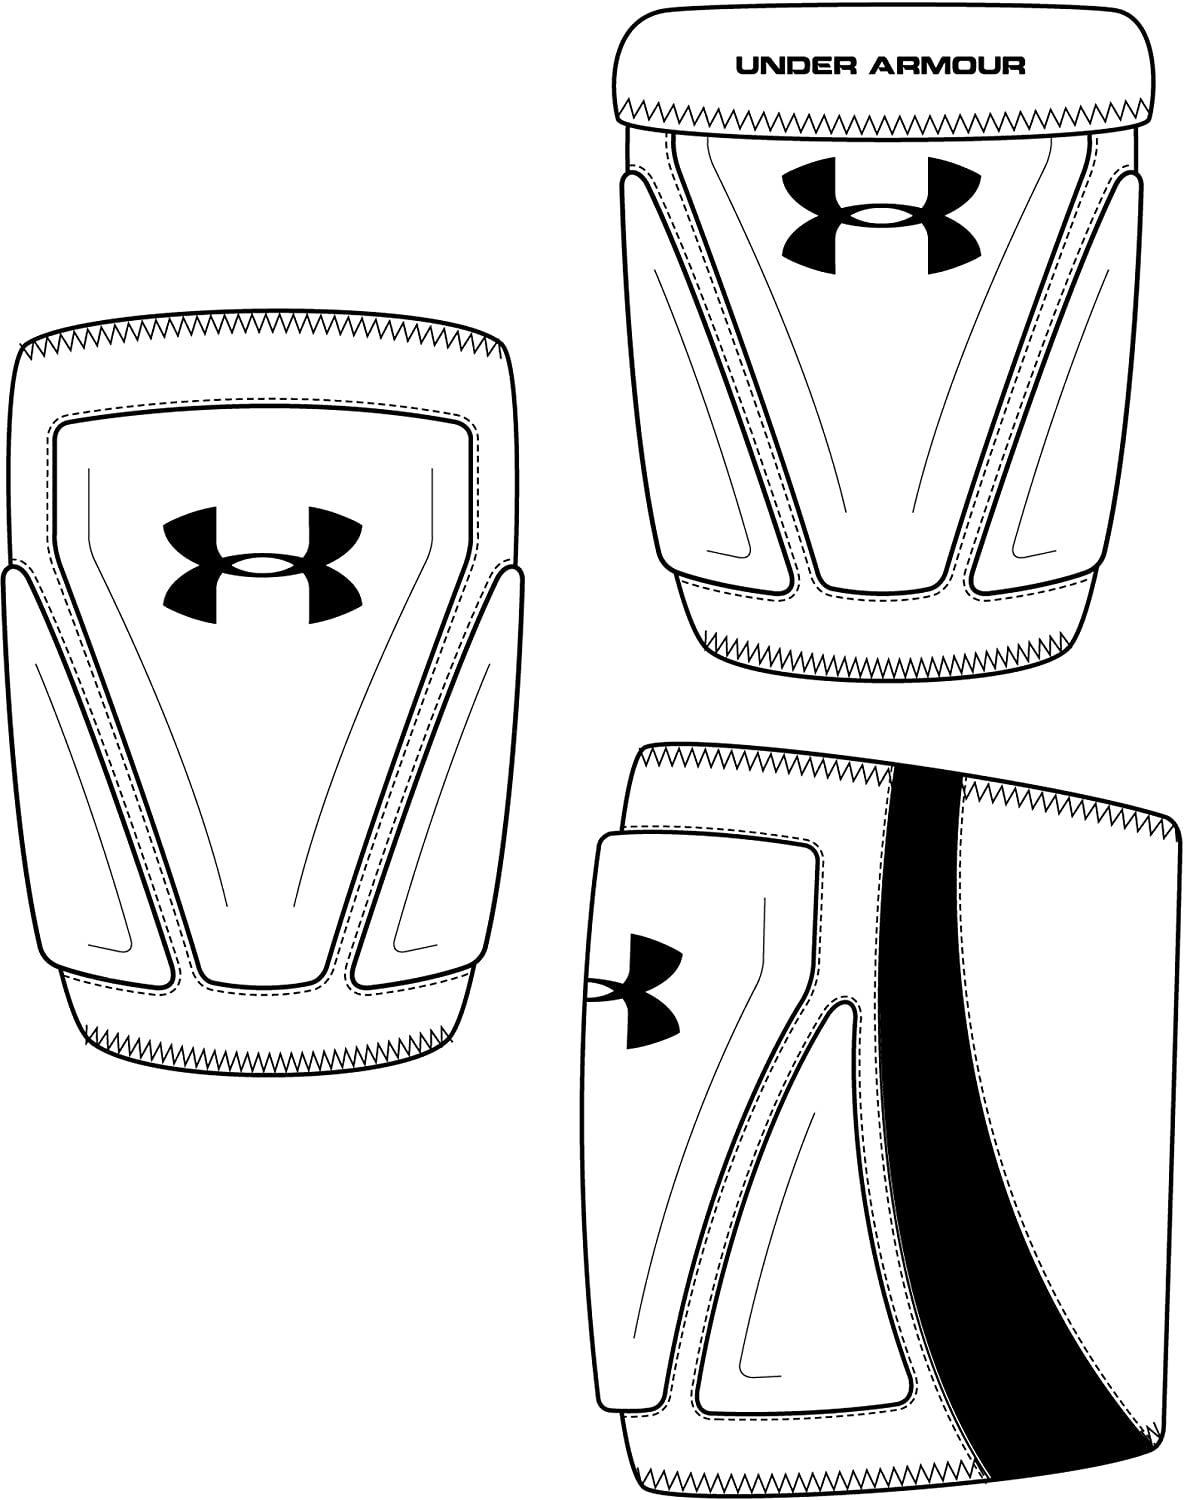 Under Armour Unisex Strive Volleyball Knee Pads White Black Sm Md Amazon Co Uk Sports Outdoors